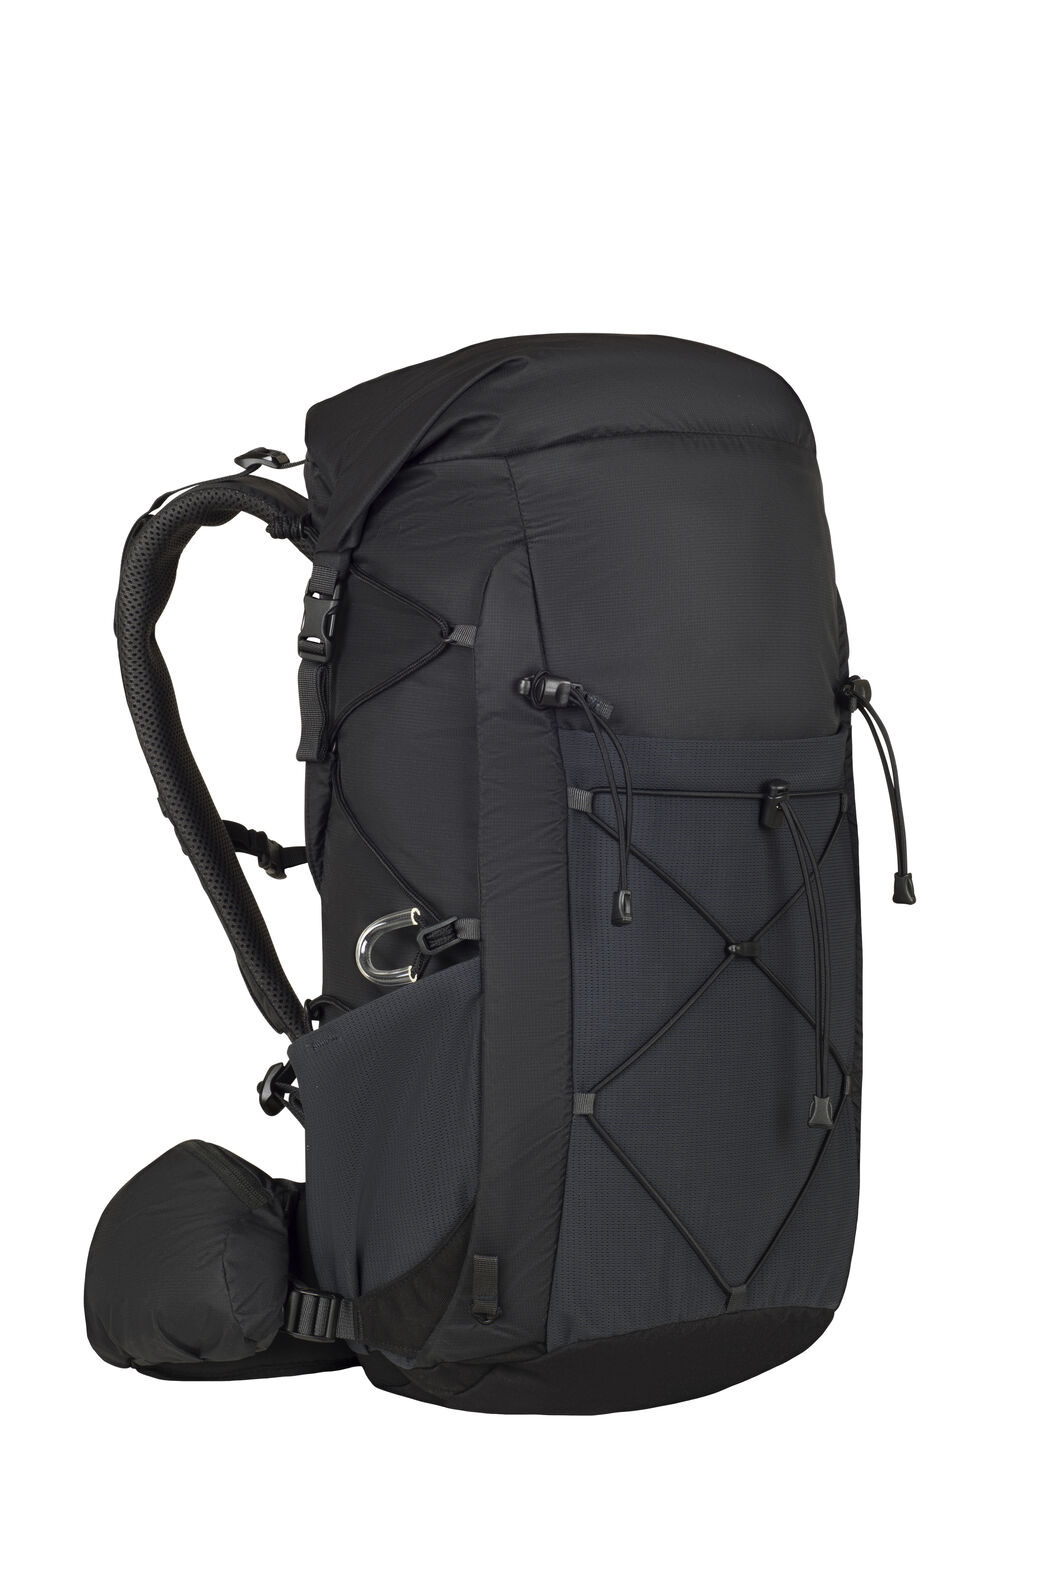 Macpac Fiord 28L Hiking Pack, Black/Black, hi-res